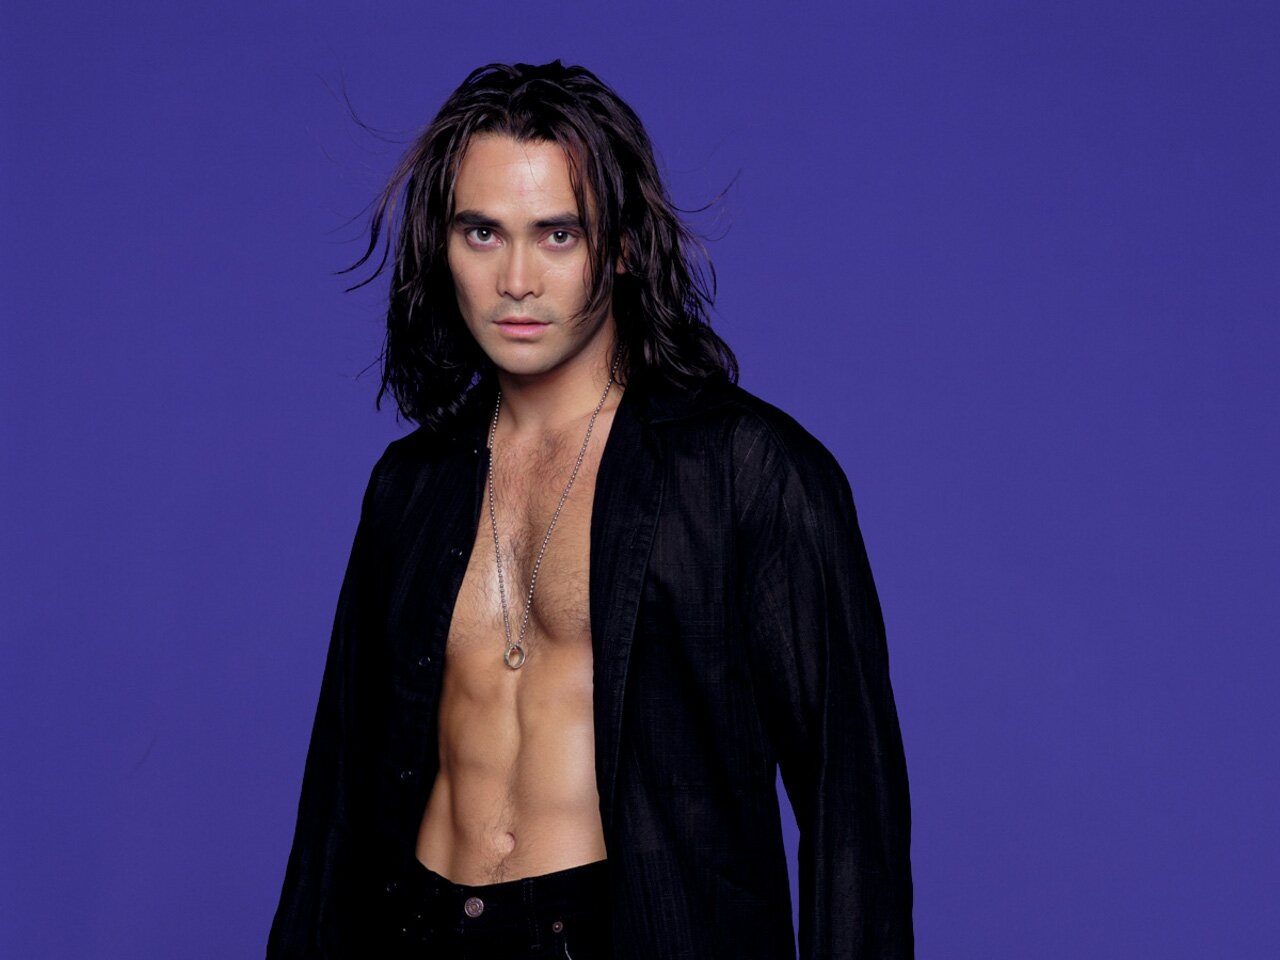 Mark Dacascos Wallpapers hd